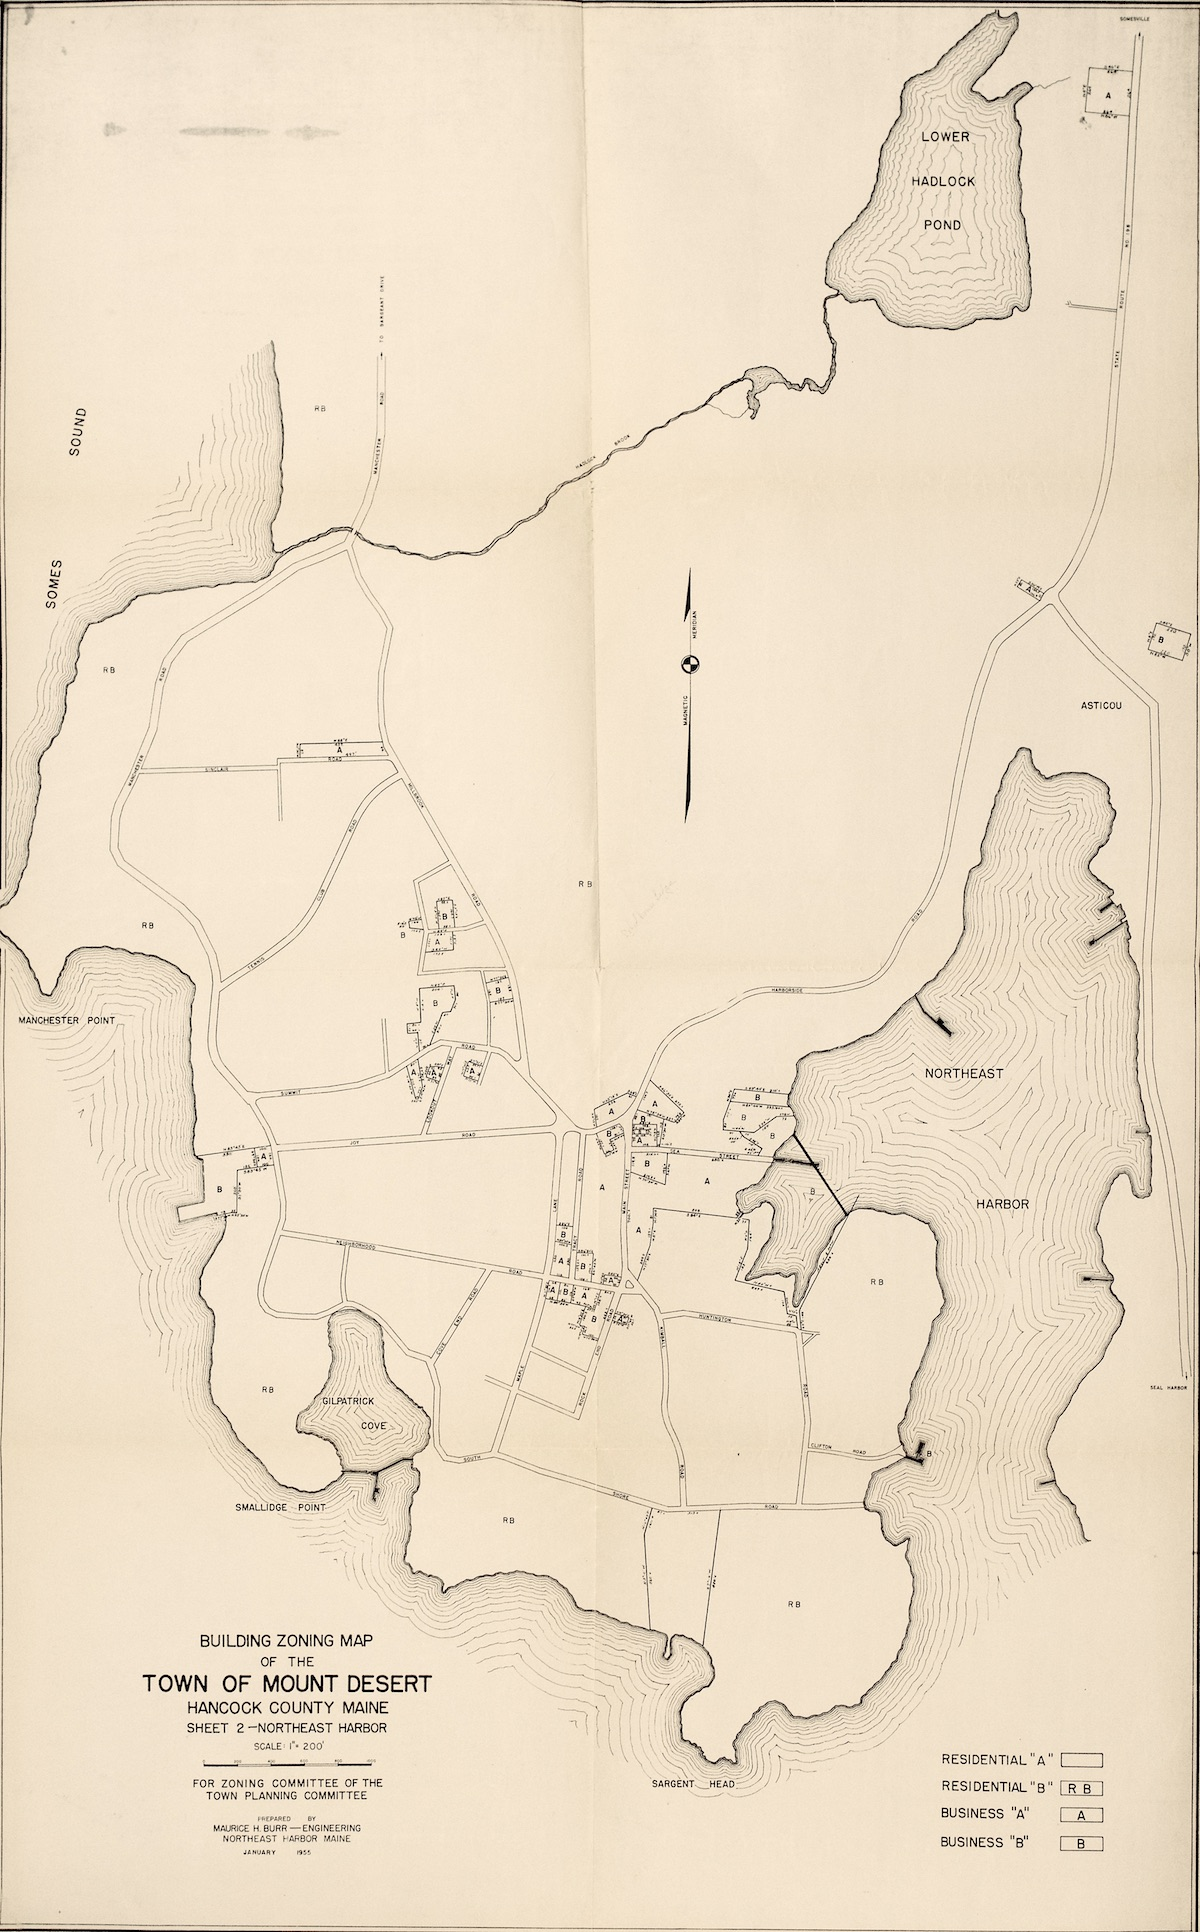 Building Zoning Map of the Town of Mount Desert